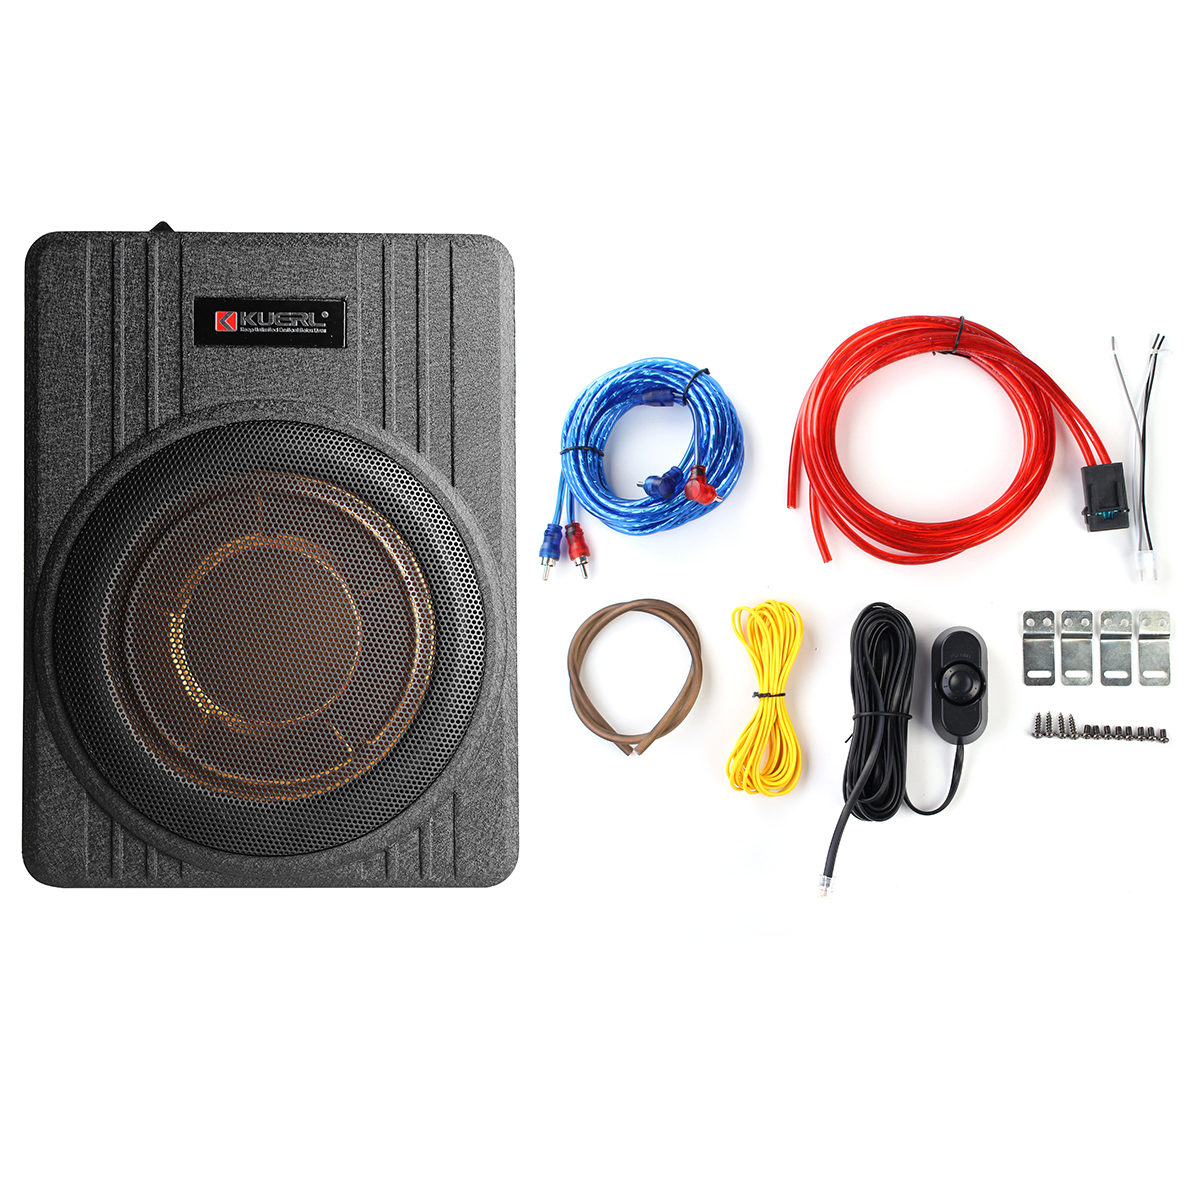 Subwoofer Slim Amplifier Speaker Remove-Control Under-Seat Active 10inch 600W Thin Car